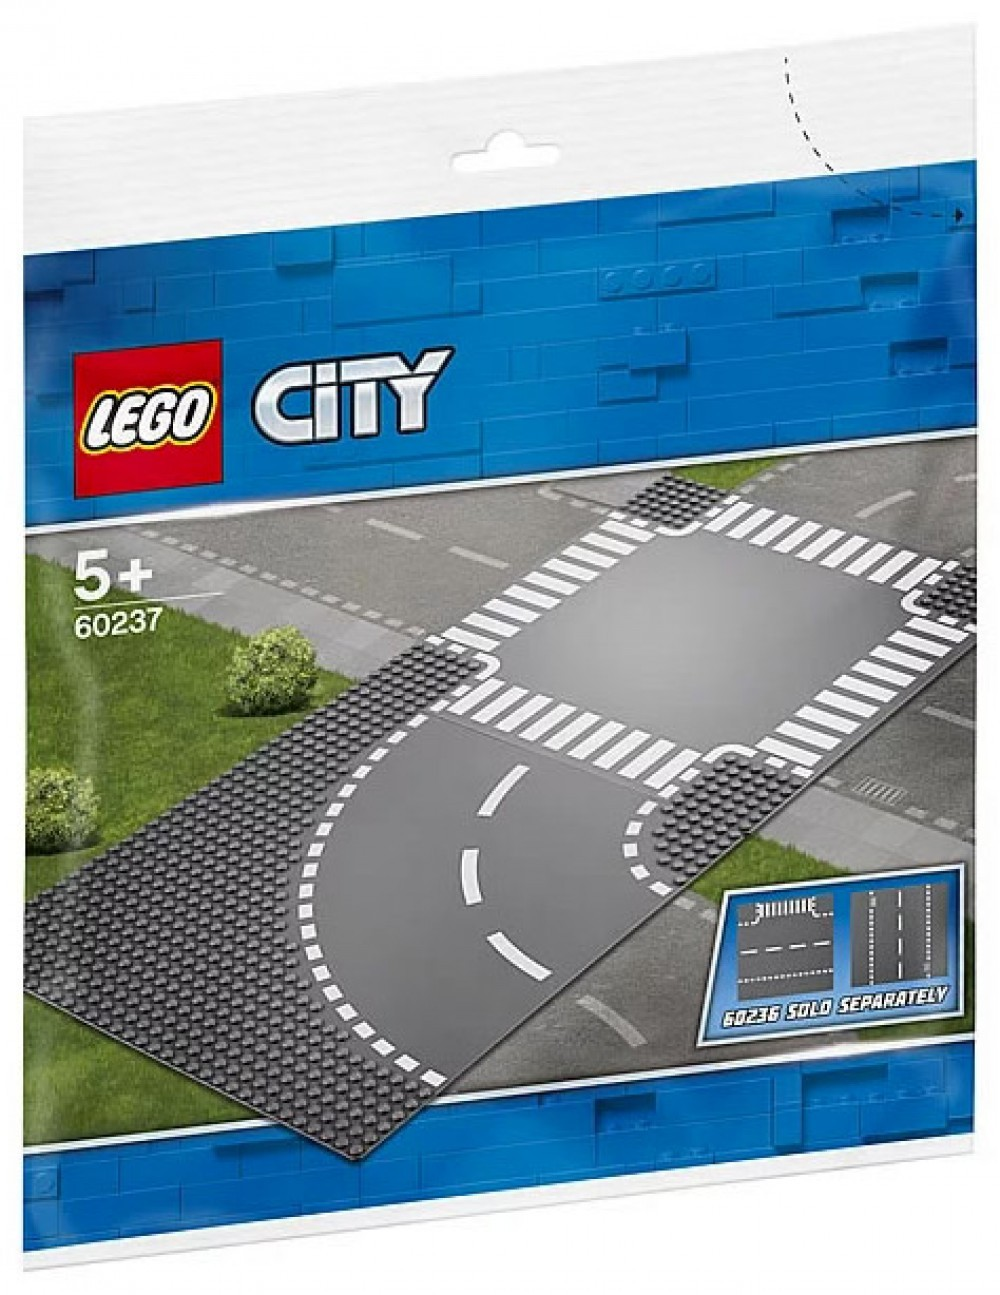 Nouveau LEGO City 60237 Curves & Crossroad 2019